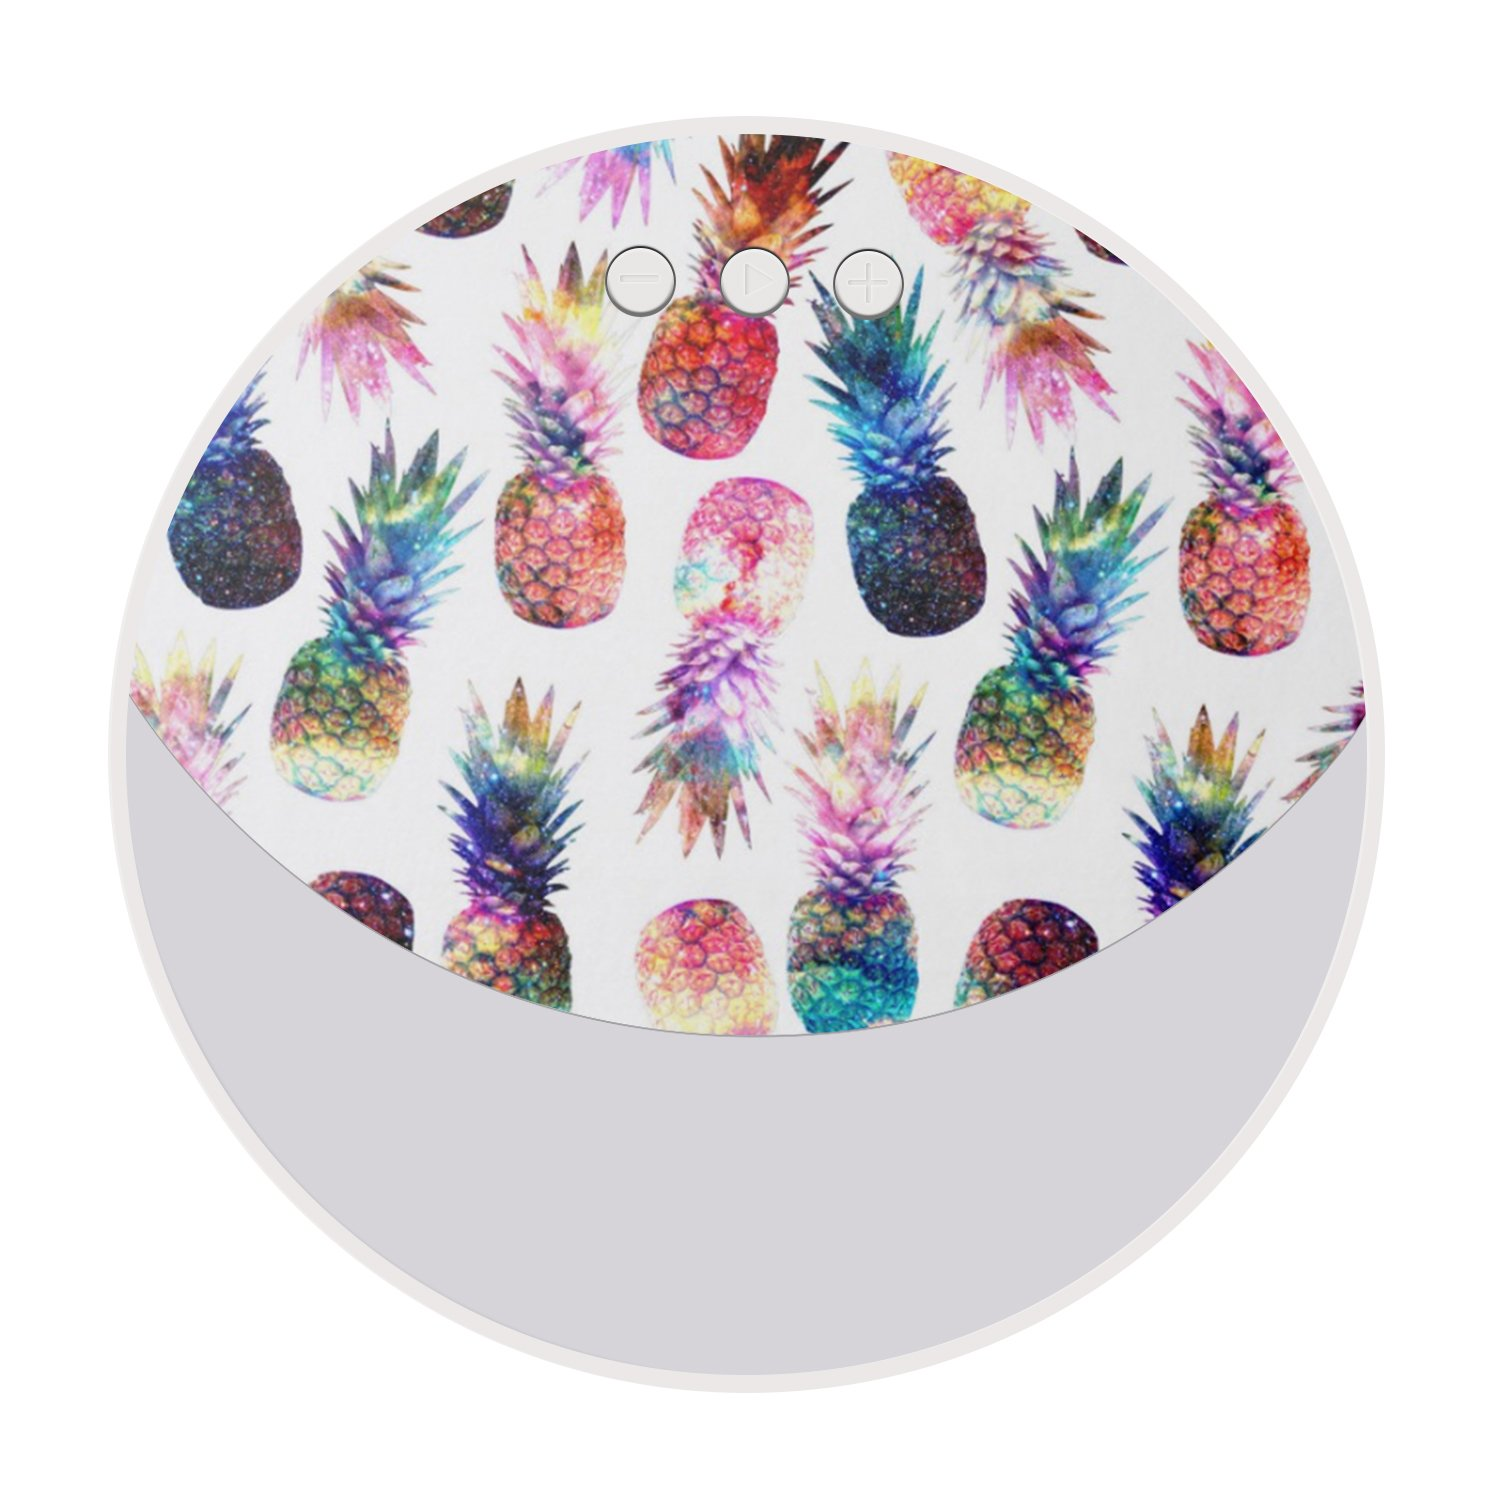 Portable Bluetooth Speaker, Personalized Enhanced Bass and HD Sound Wireless Bluetooth Stereo Speaker with Built-in Mic and TF Card Slot for iPhone iPad PC Cellphone - Colorful Pineapples